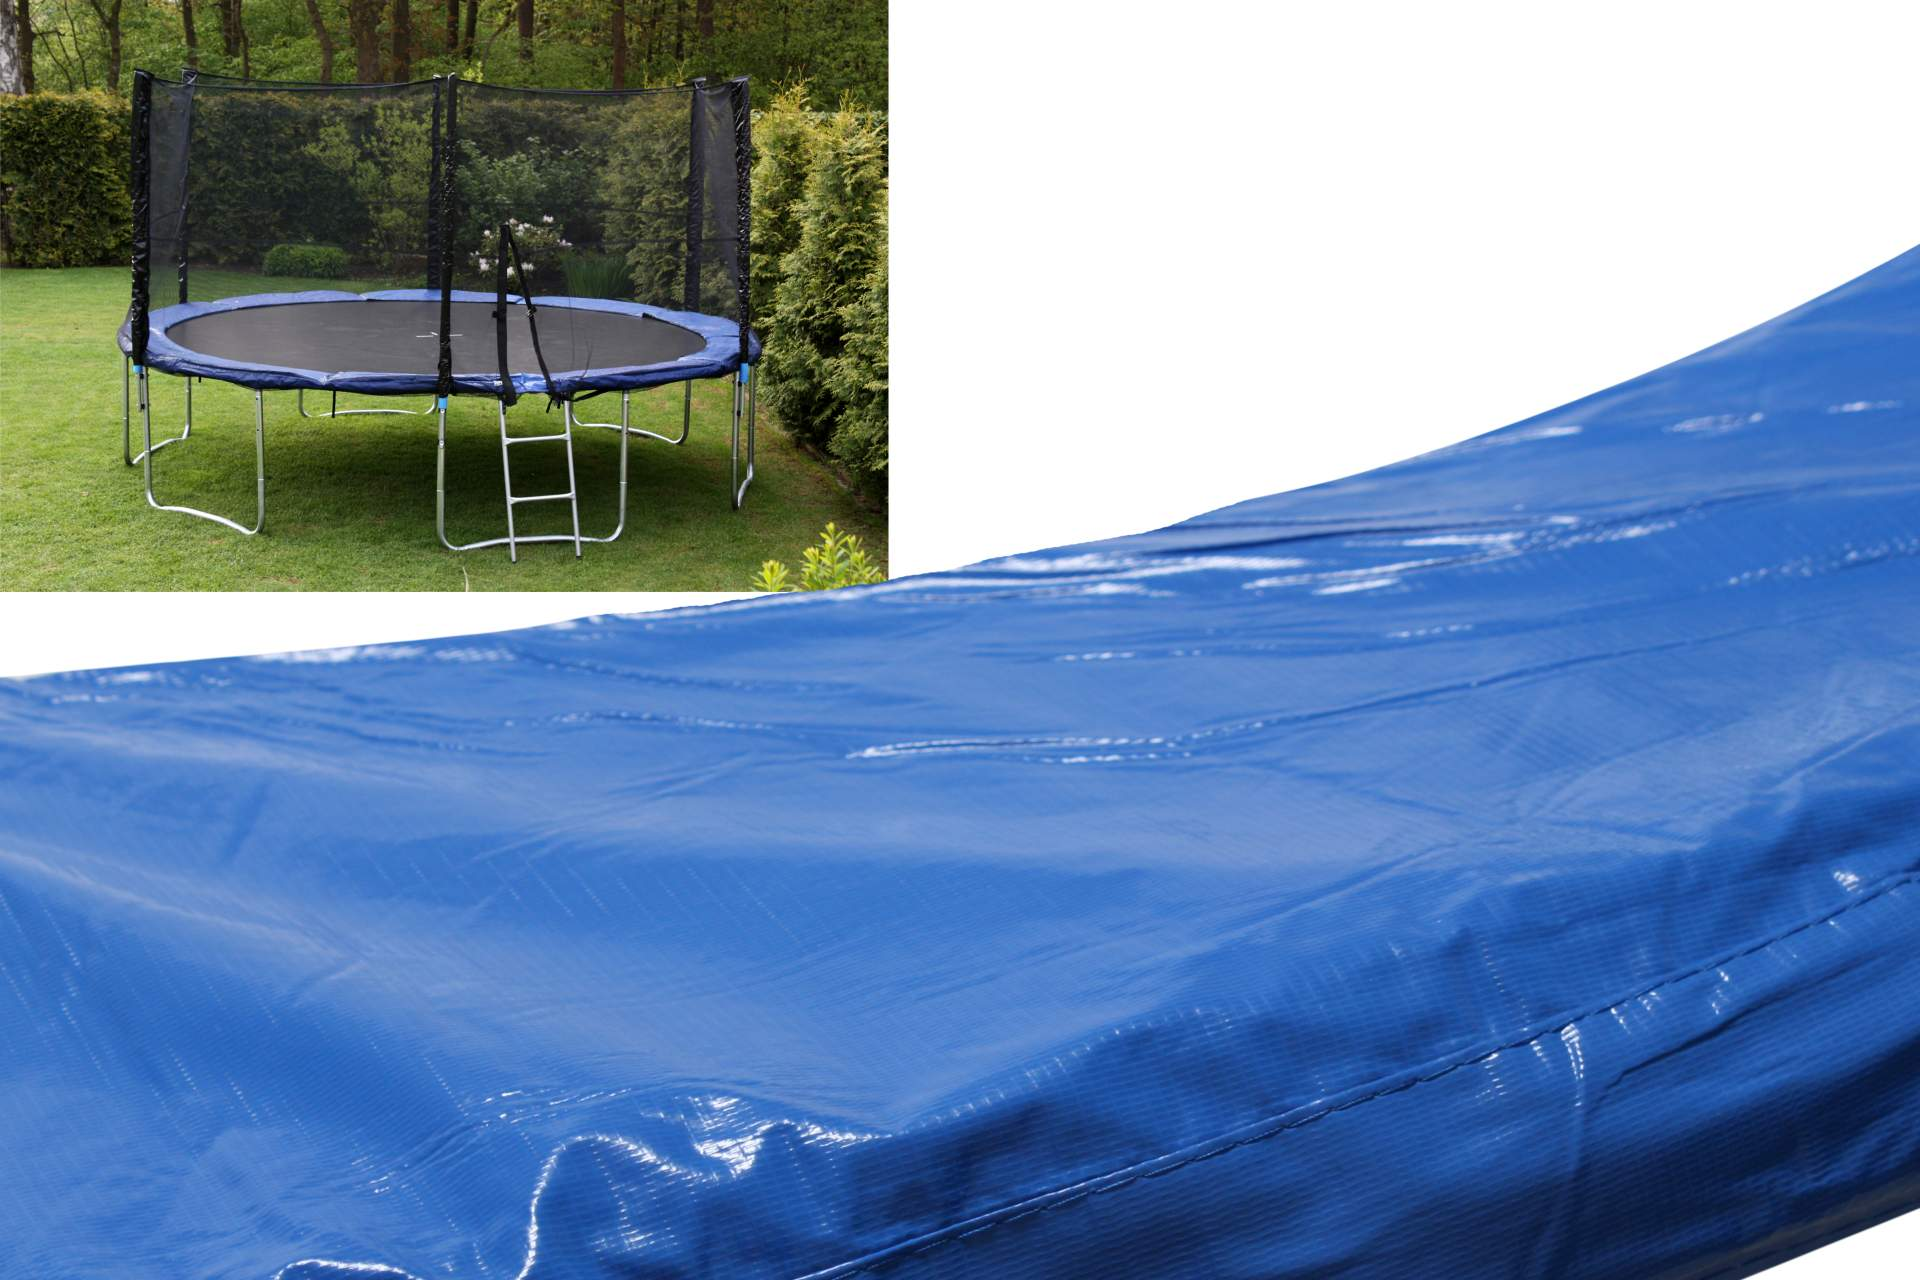 randabdeckung 366 cm f r trampolin abdeckung blau 12ft federabdeckung trampoline ebay. Black Bedroom Furniture Sets. Home Design Ideas